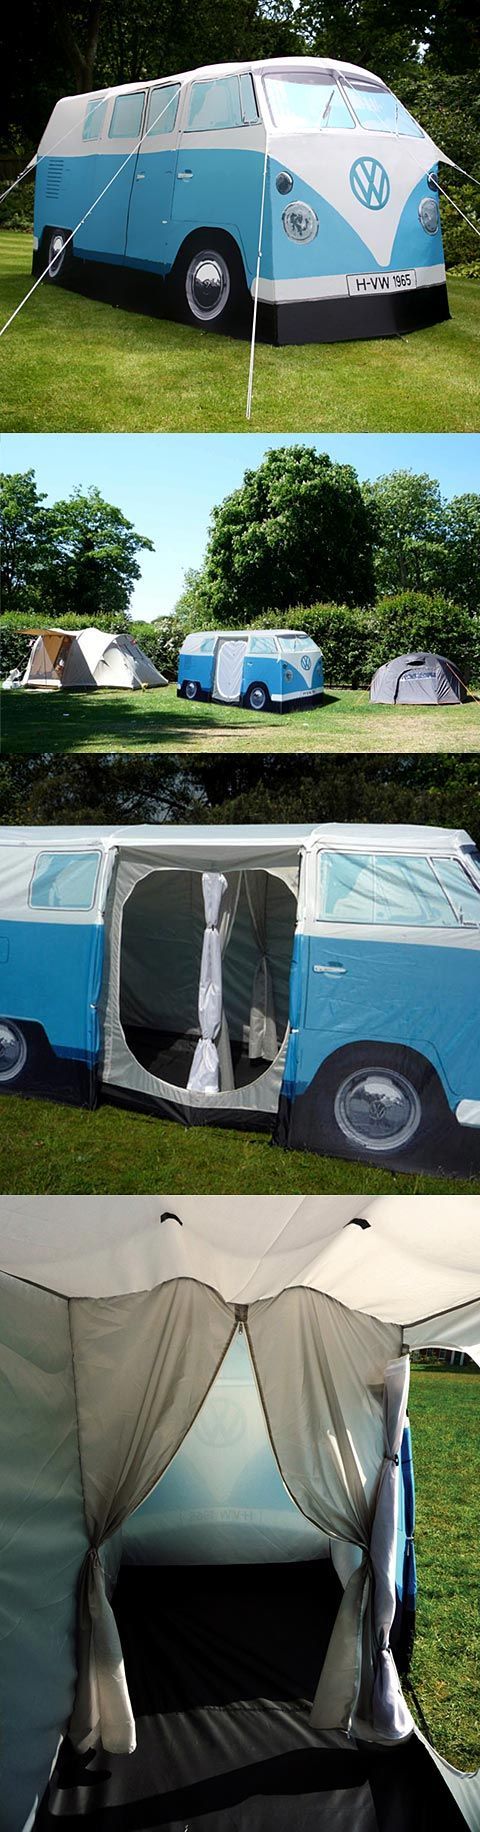 VW Camper Van Tent. I want this!